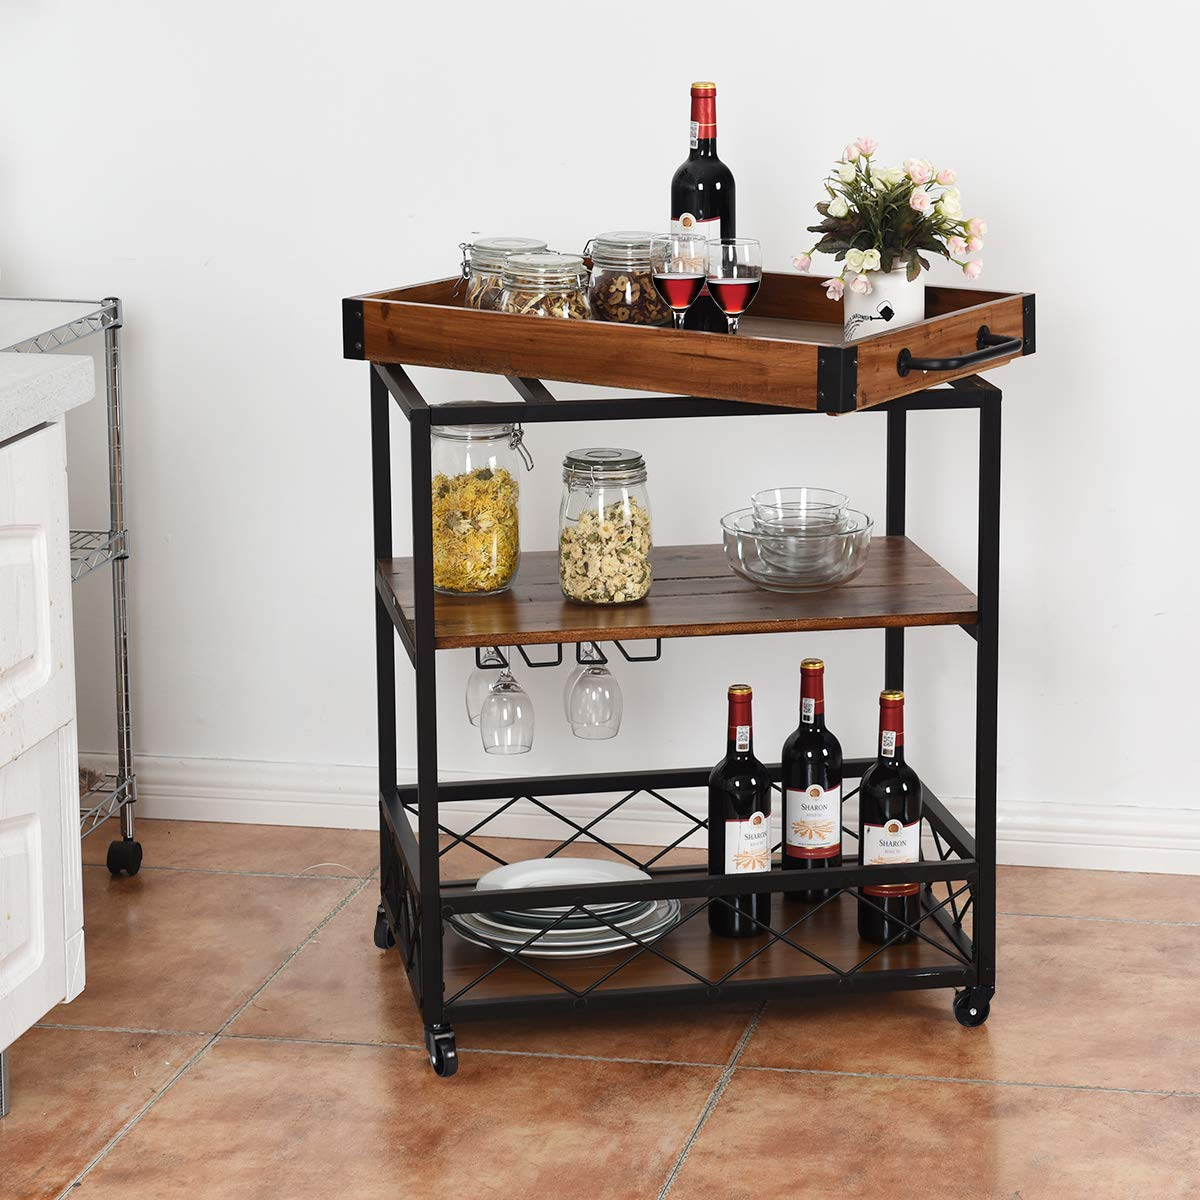 Giantex Kitchen Trolley Cart Island Rolling Serving Carts Utility Cart 3 Tier Storage Shelf with Glass Holde, Handle Racks, Lockable Caster Wheels Kitchen Carts Islands w/Removable Wood Box Container by Giantex (Image #4)